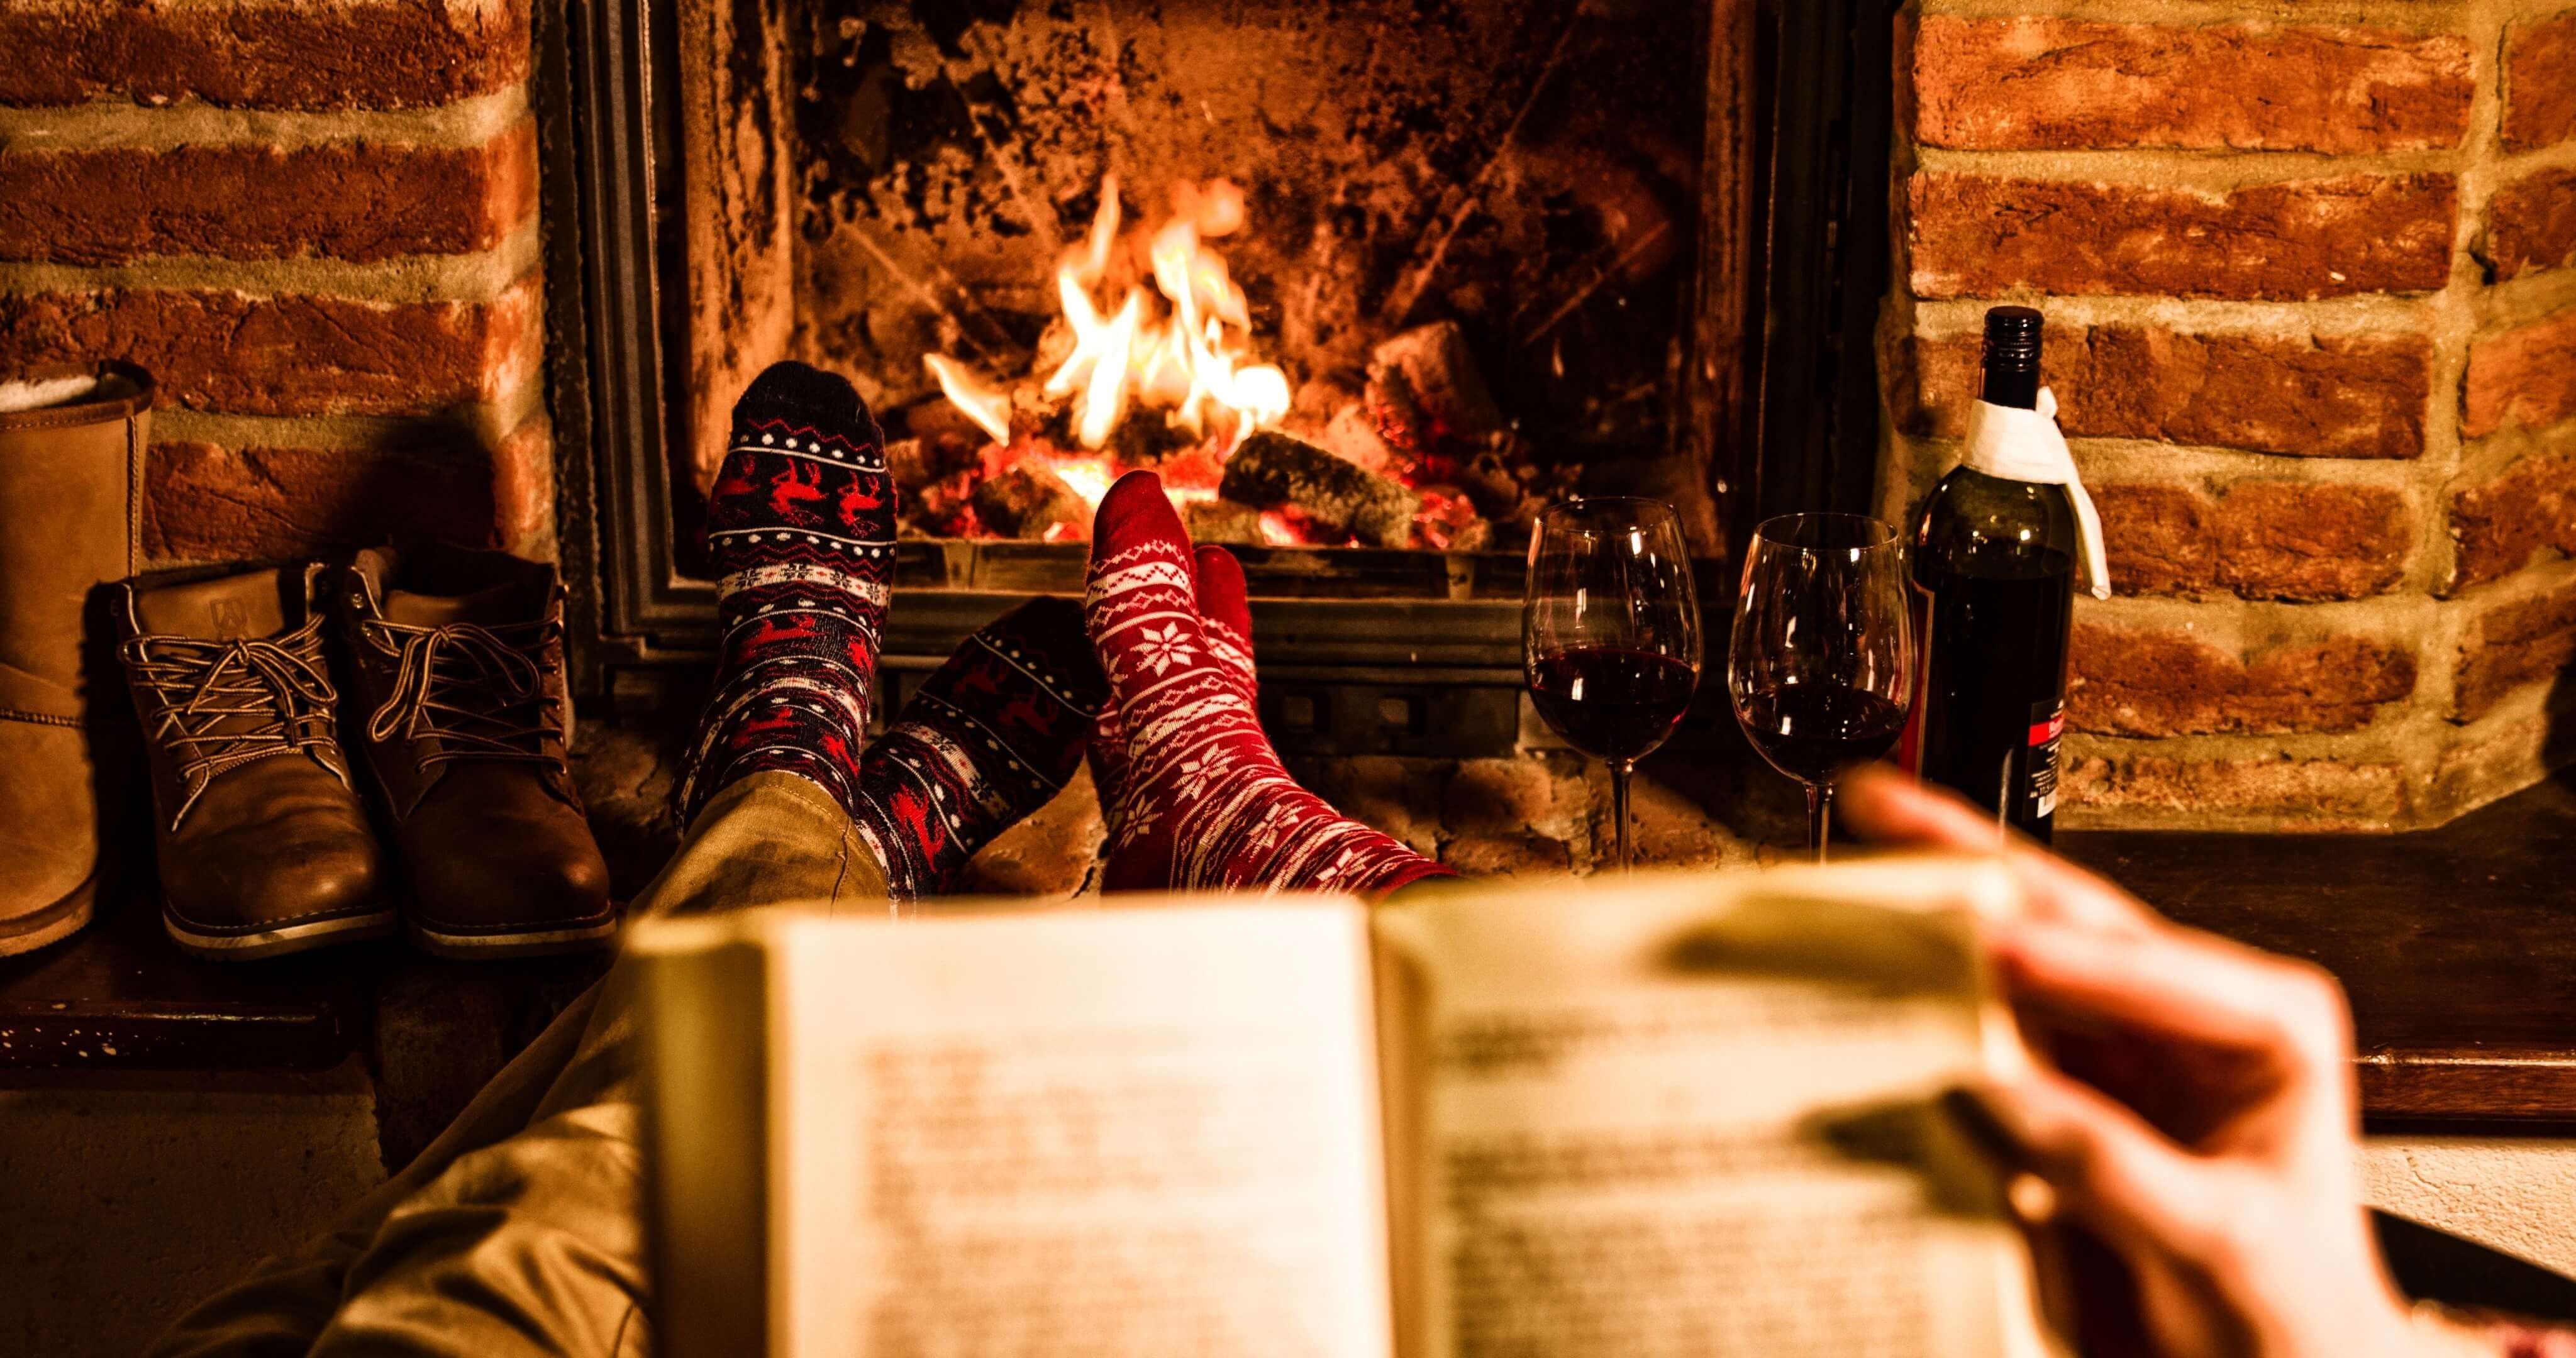 Wine in front of fire place low res 2